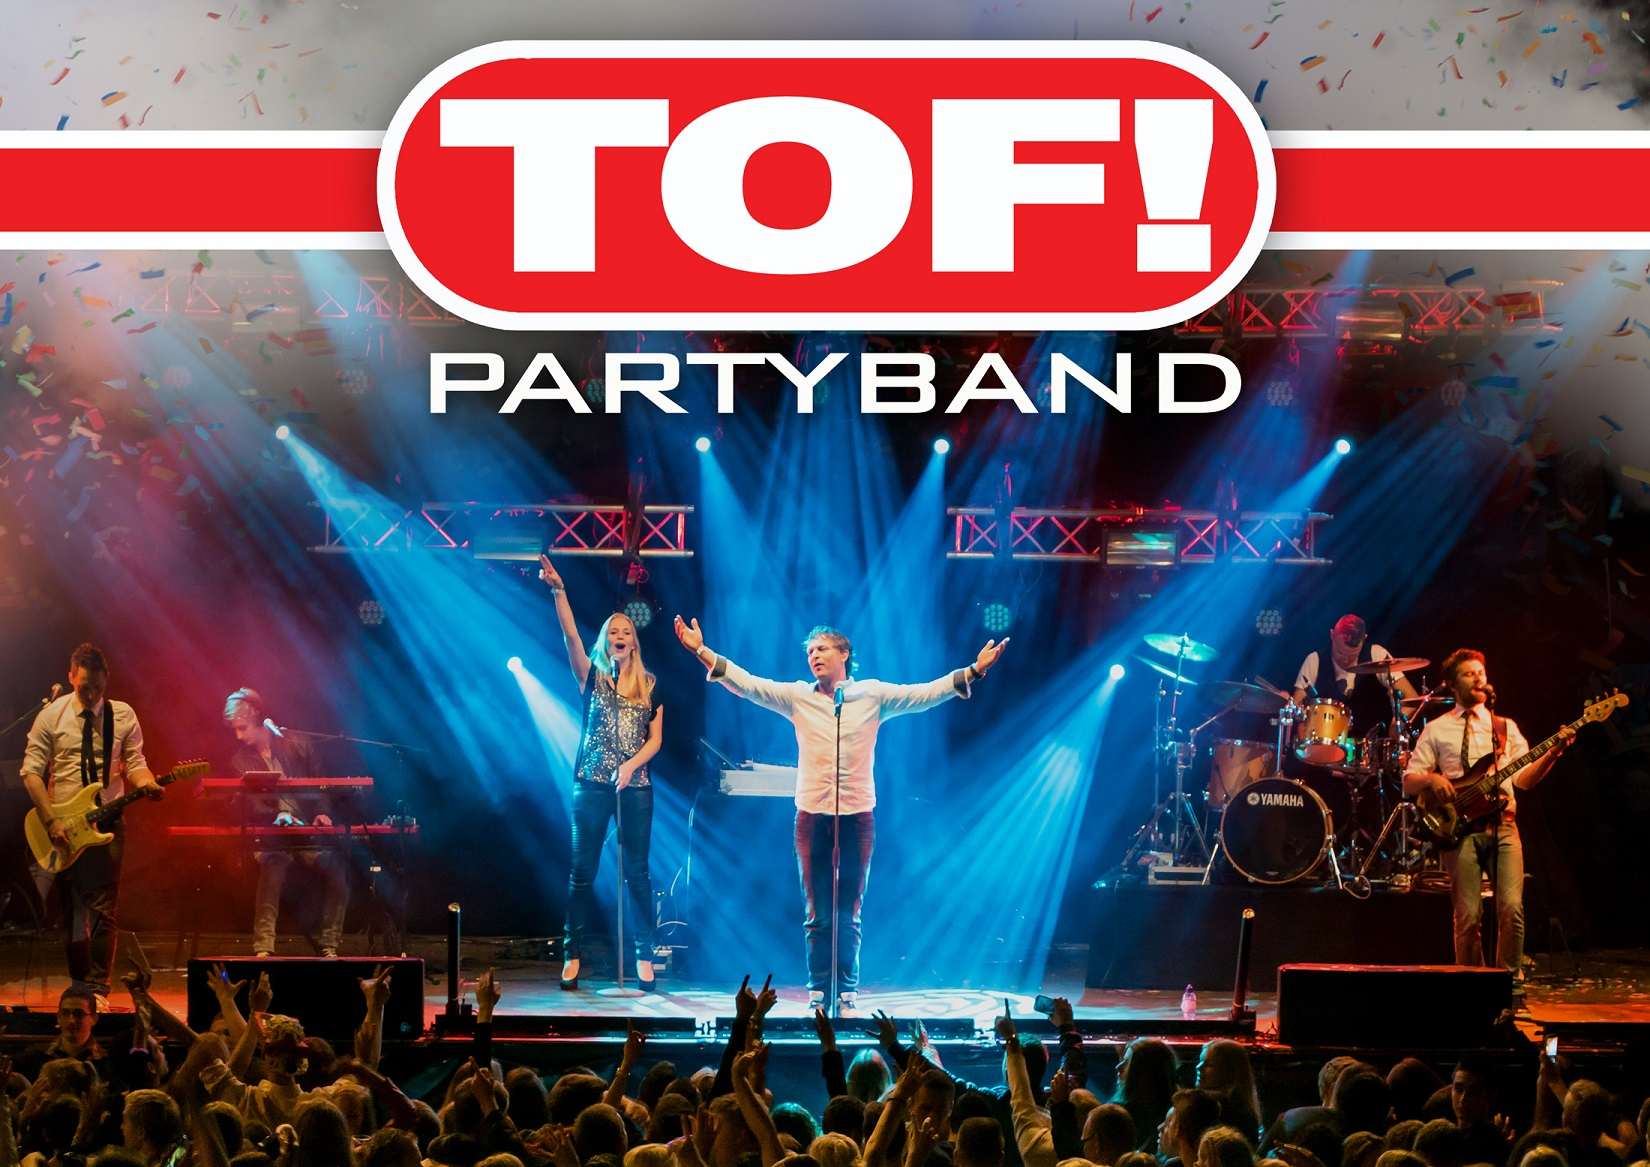 TOF! Partyband